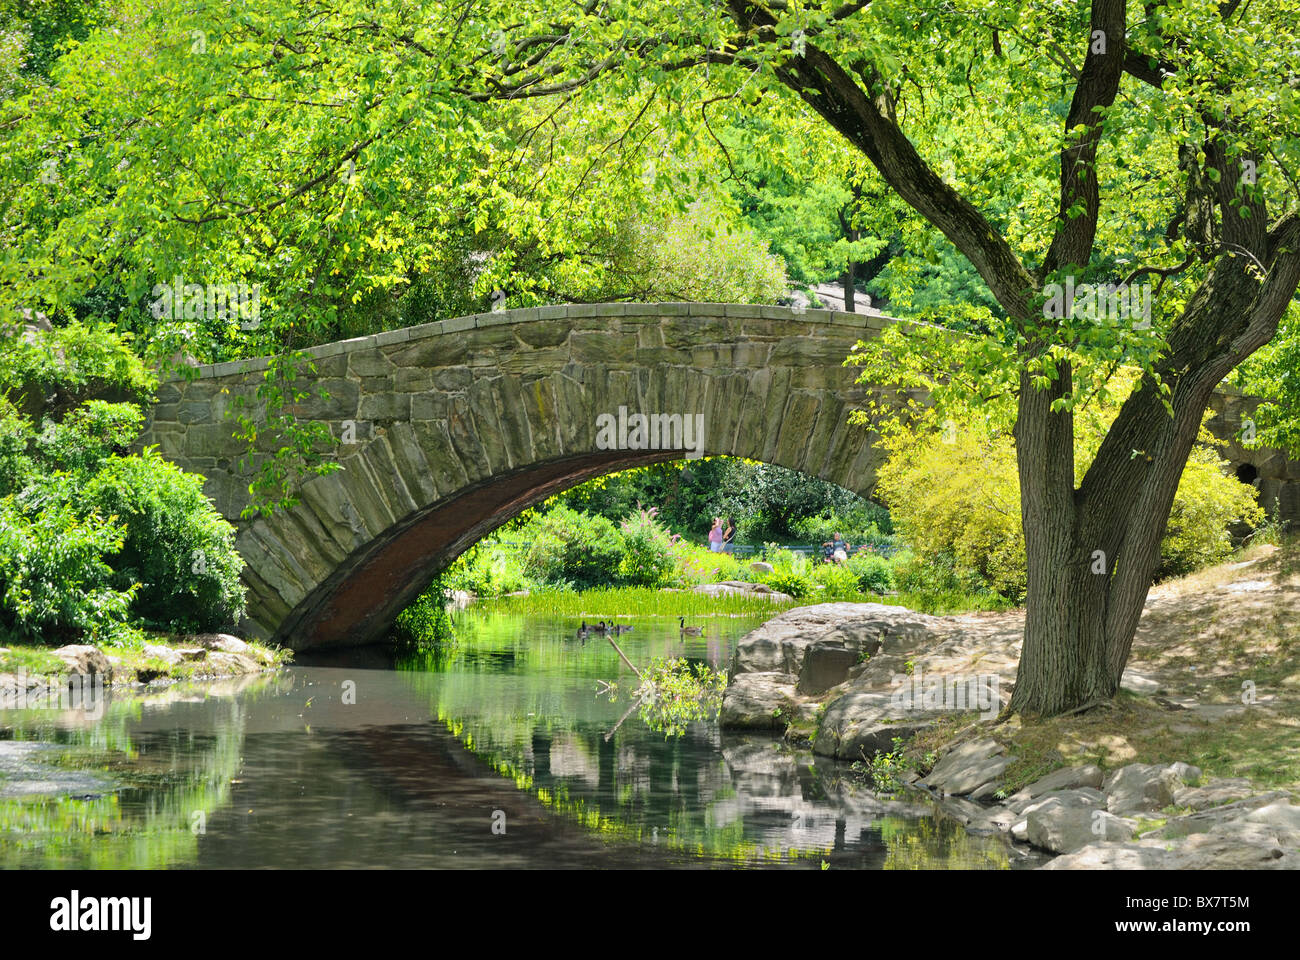 Gapstow Bridge over The Pond at Central Park in New York City - Stock Image